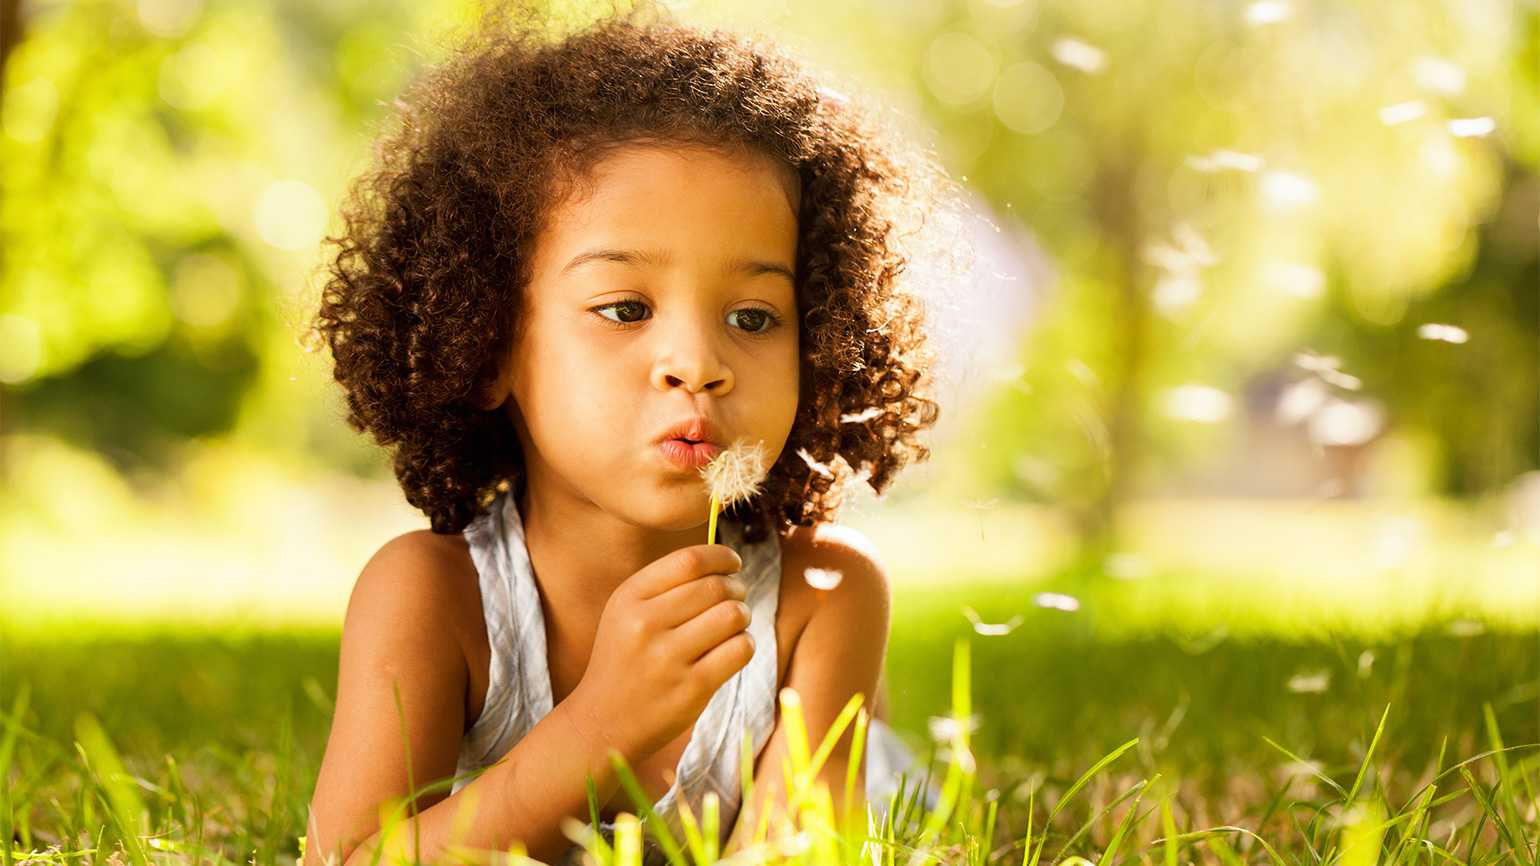 A little girl blows the seeds of a dandelion to the wind